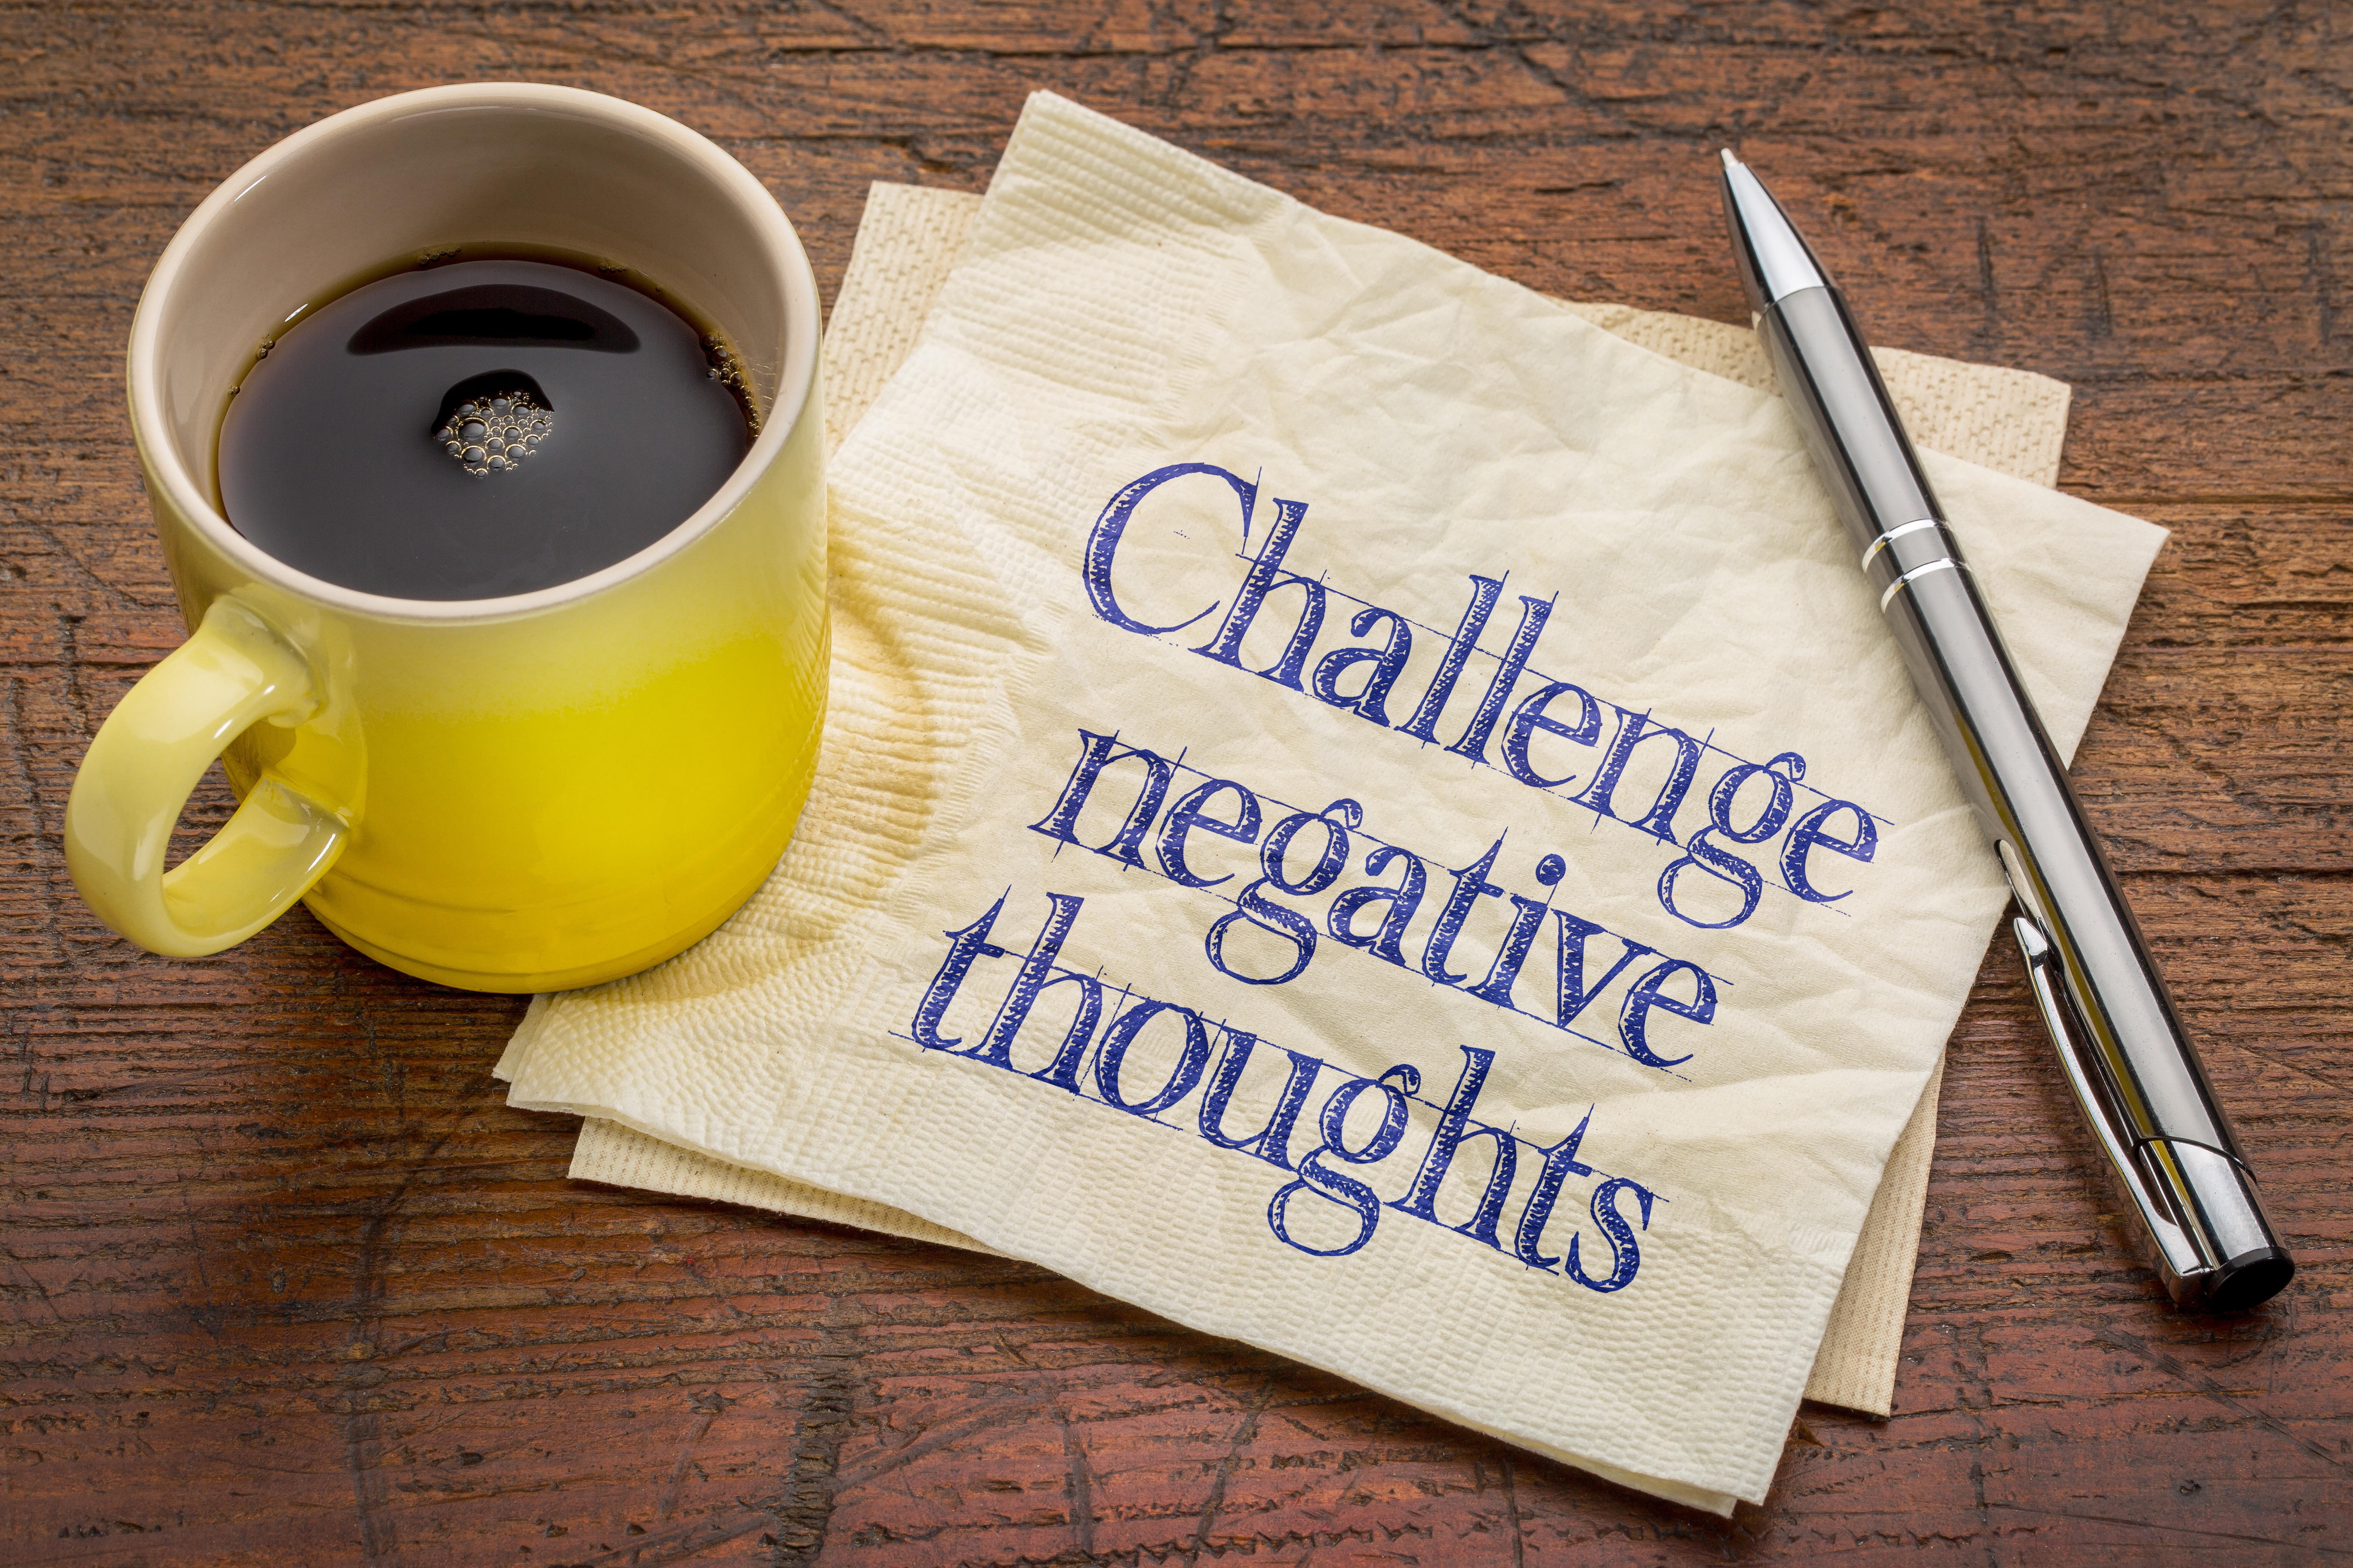 7 Strategies To Overcome Negative Thinking In Your Teams